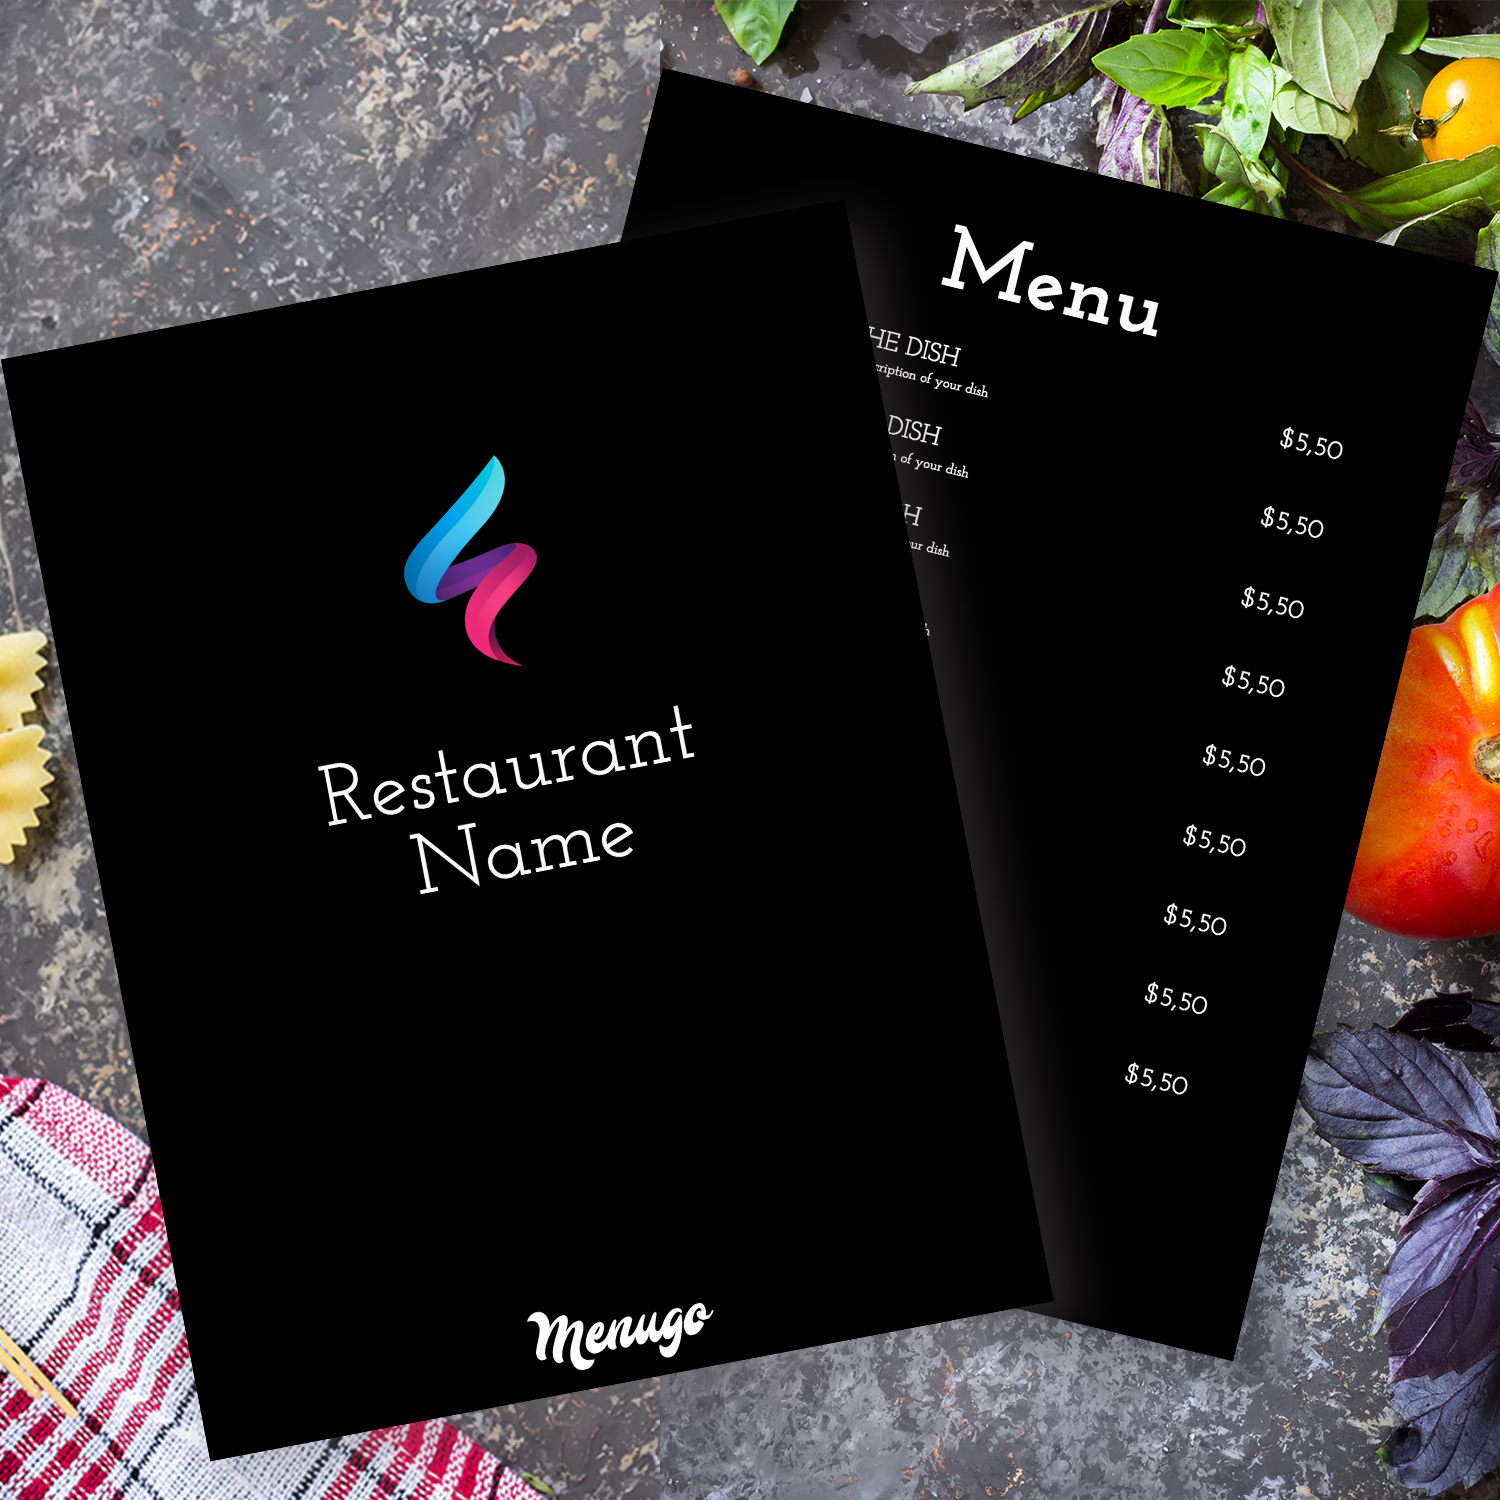 menugo restaurant menu templates